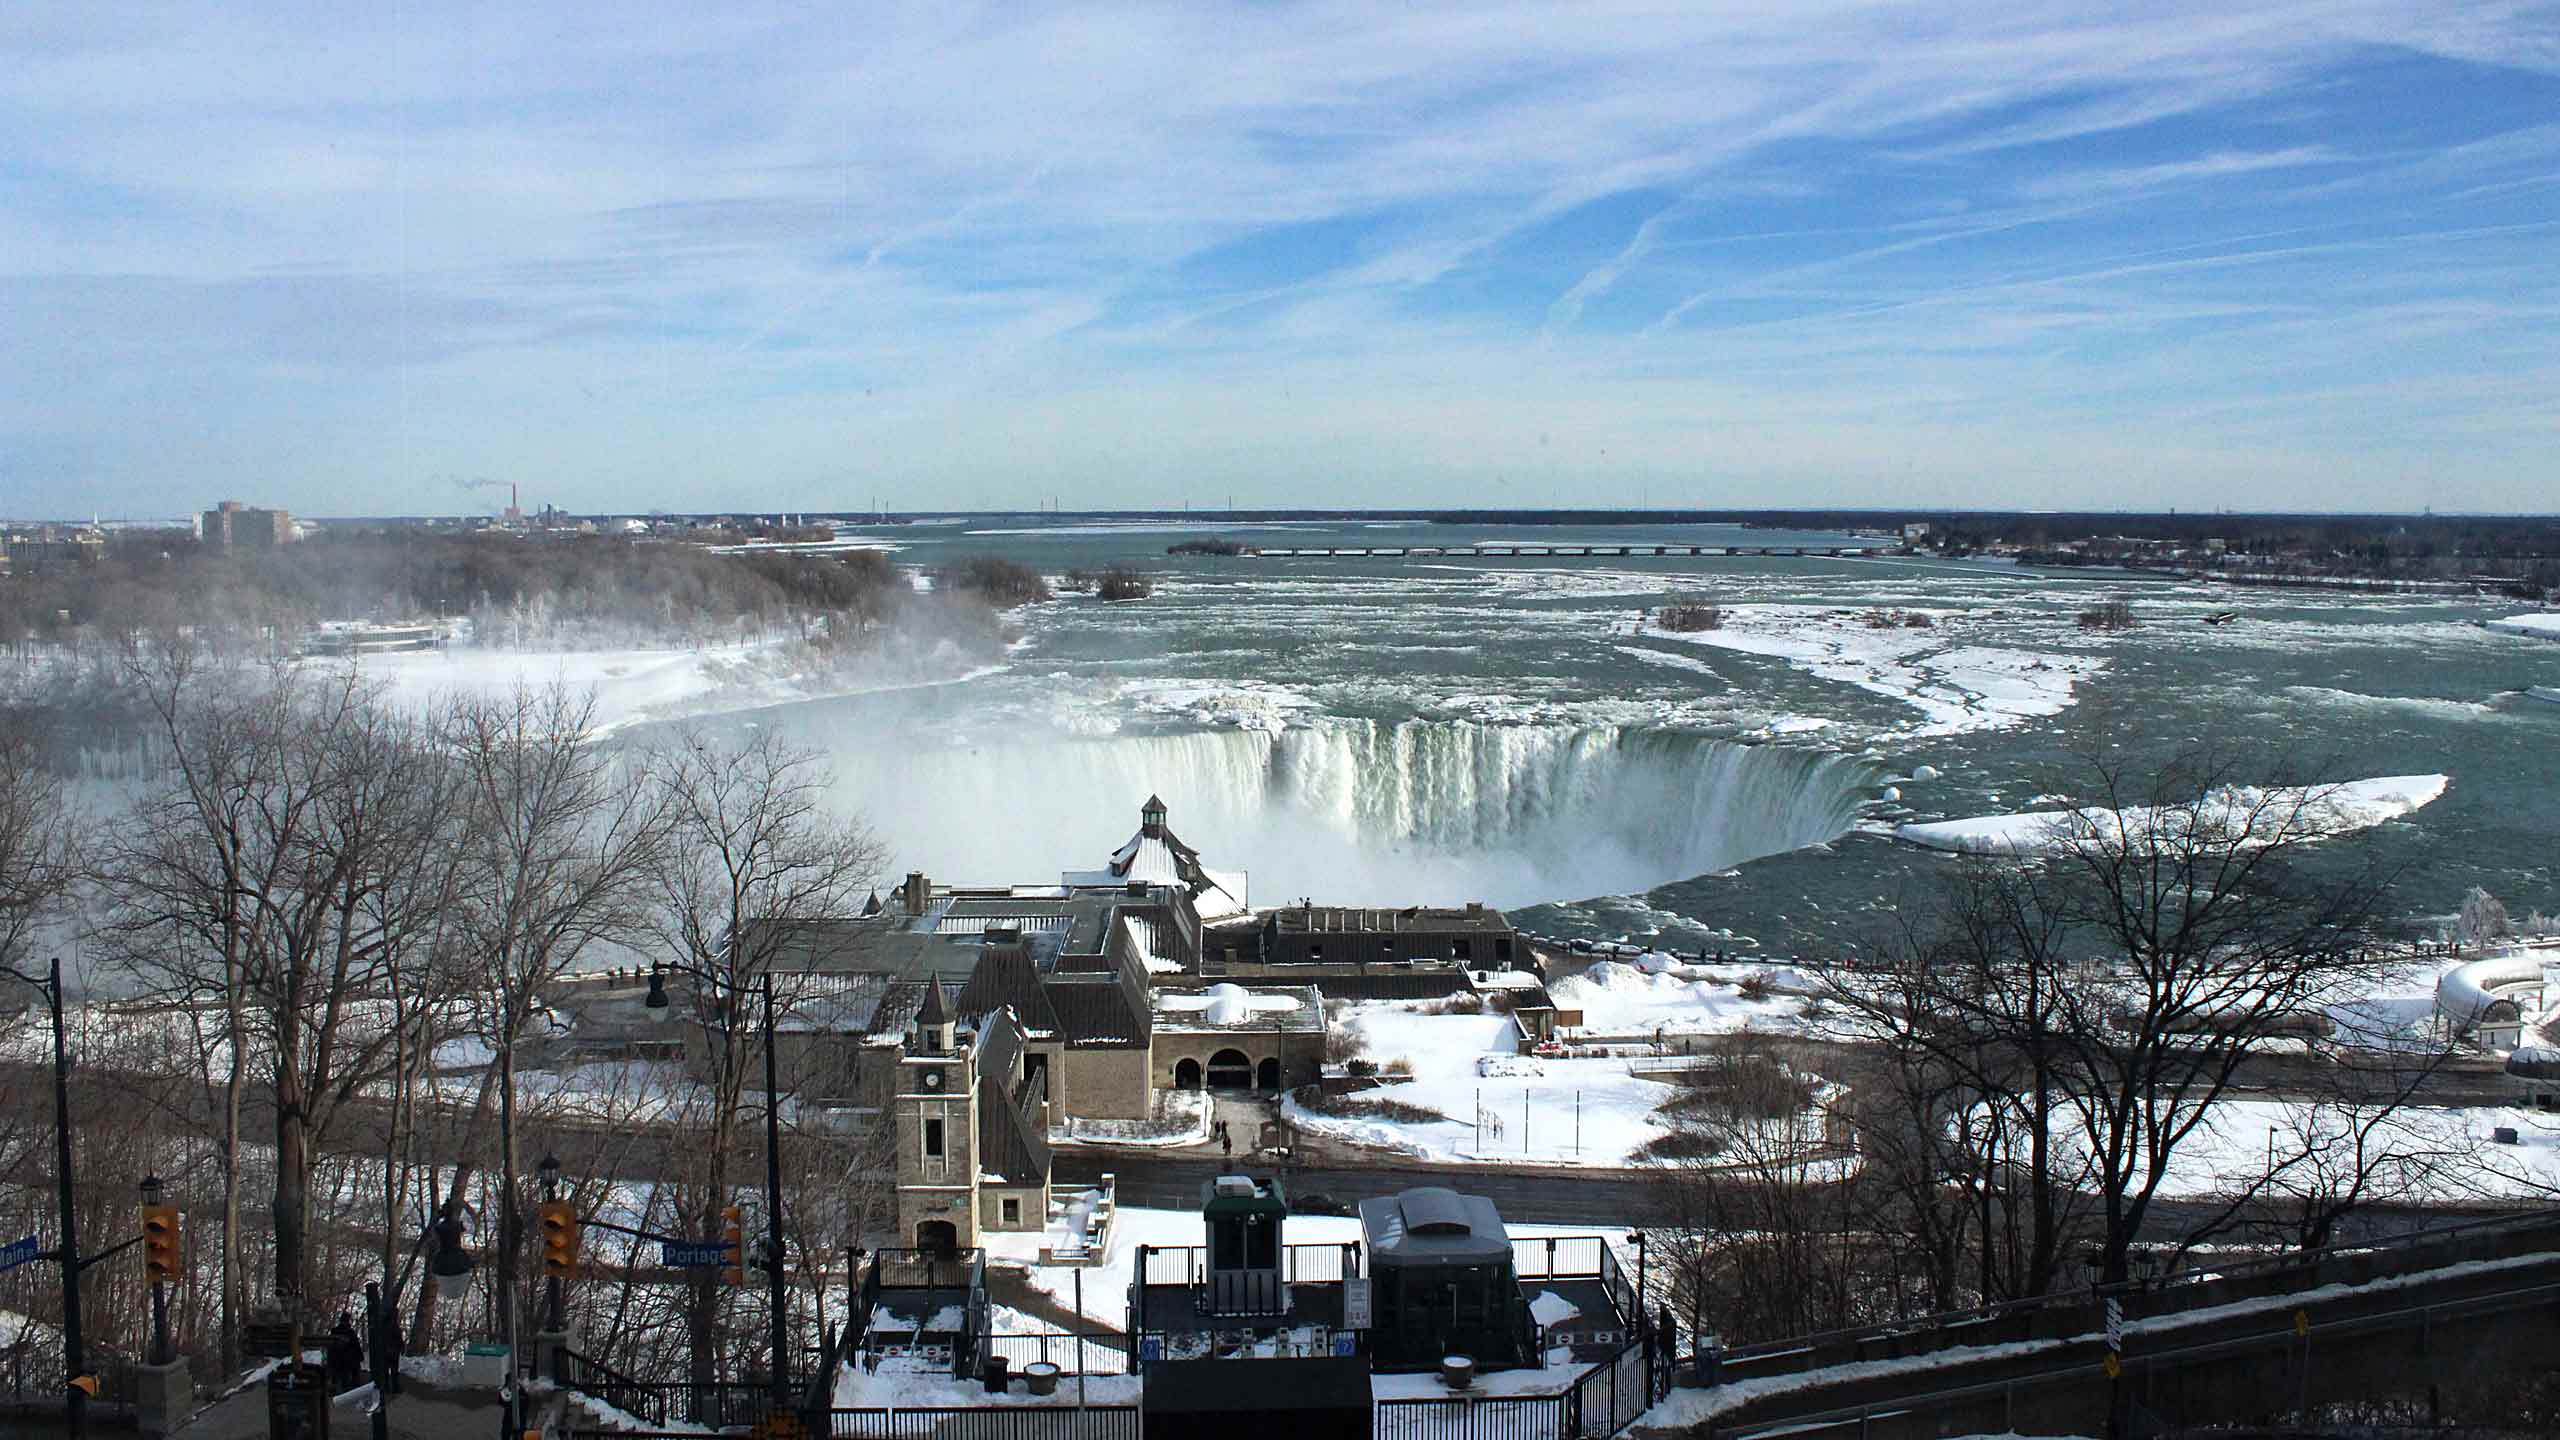 Ryerson wants to expand in Niagara Falls. PHOTO: IZABELLA BALCERZAK